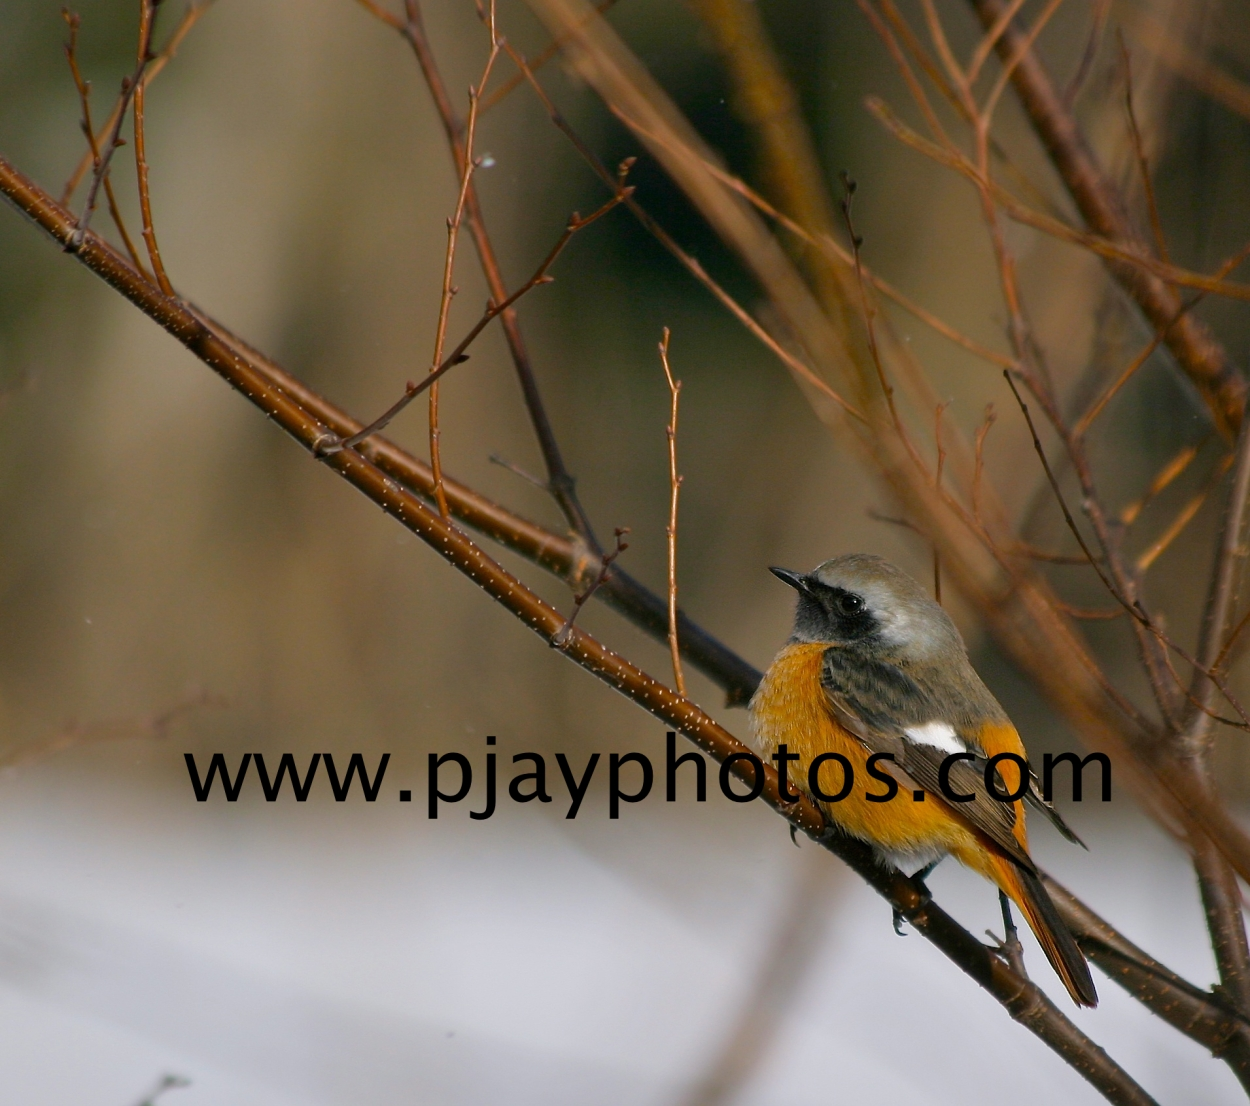 daurian redstart, redstart, bird, japan, nature, wildlife, photograph